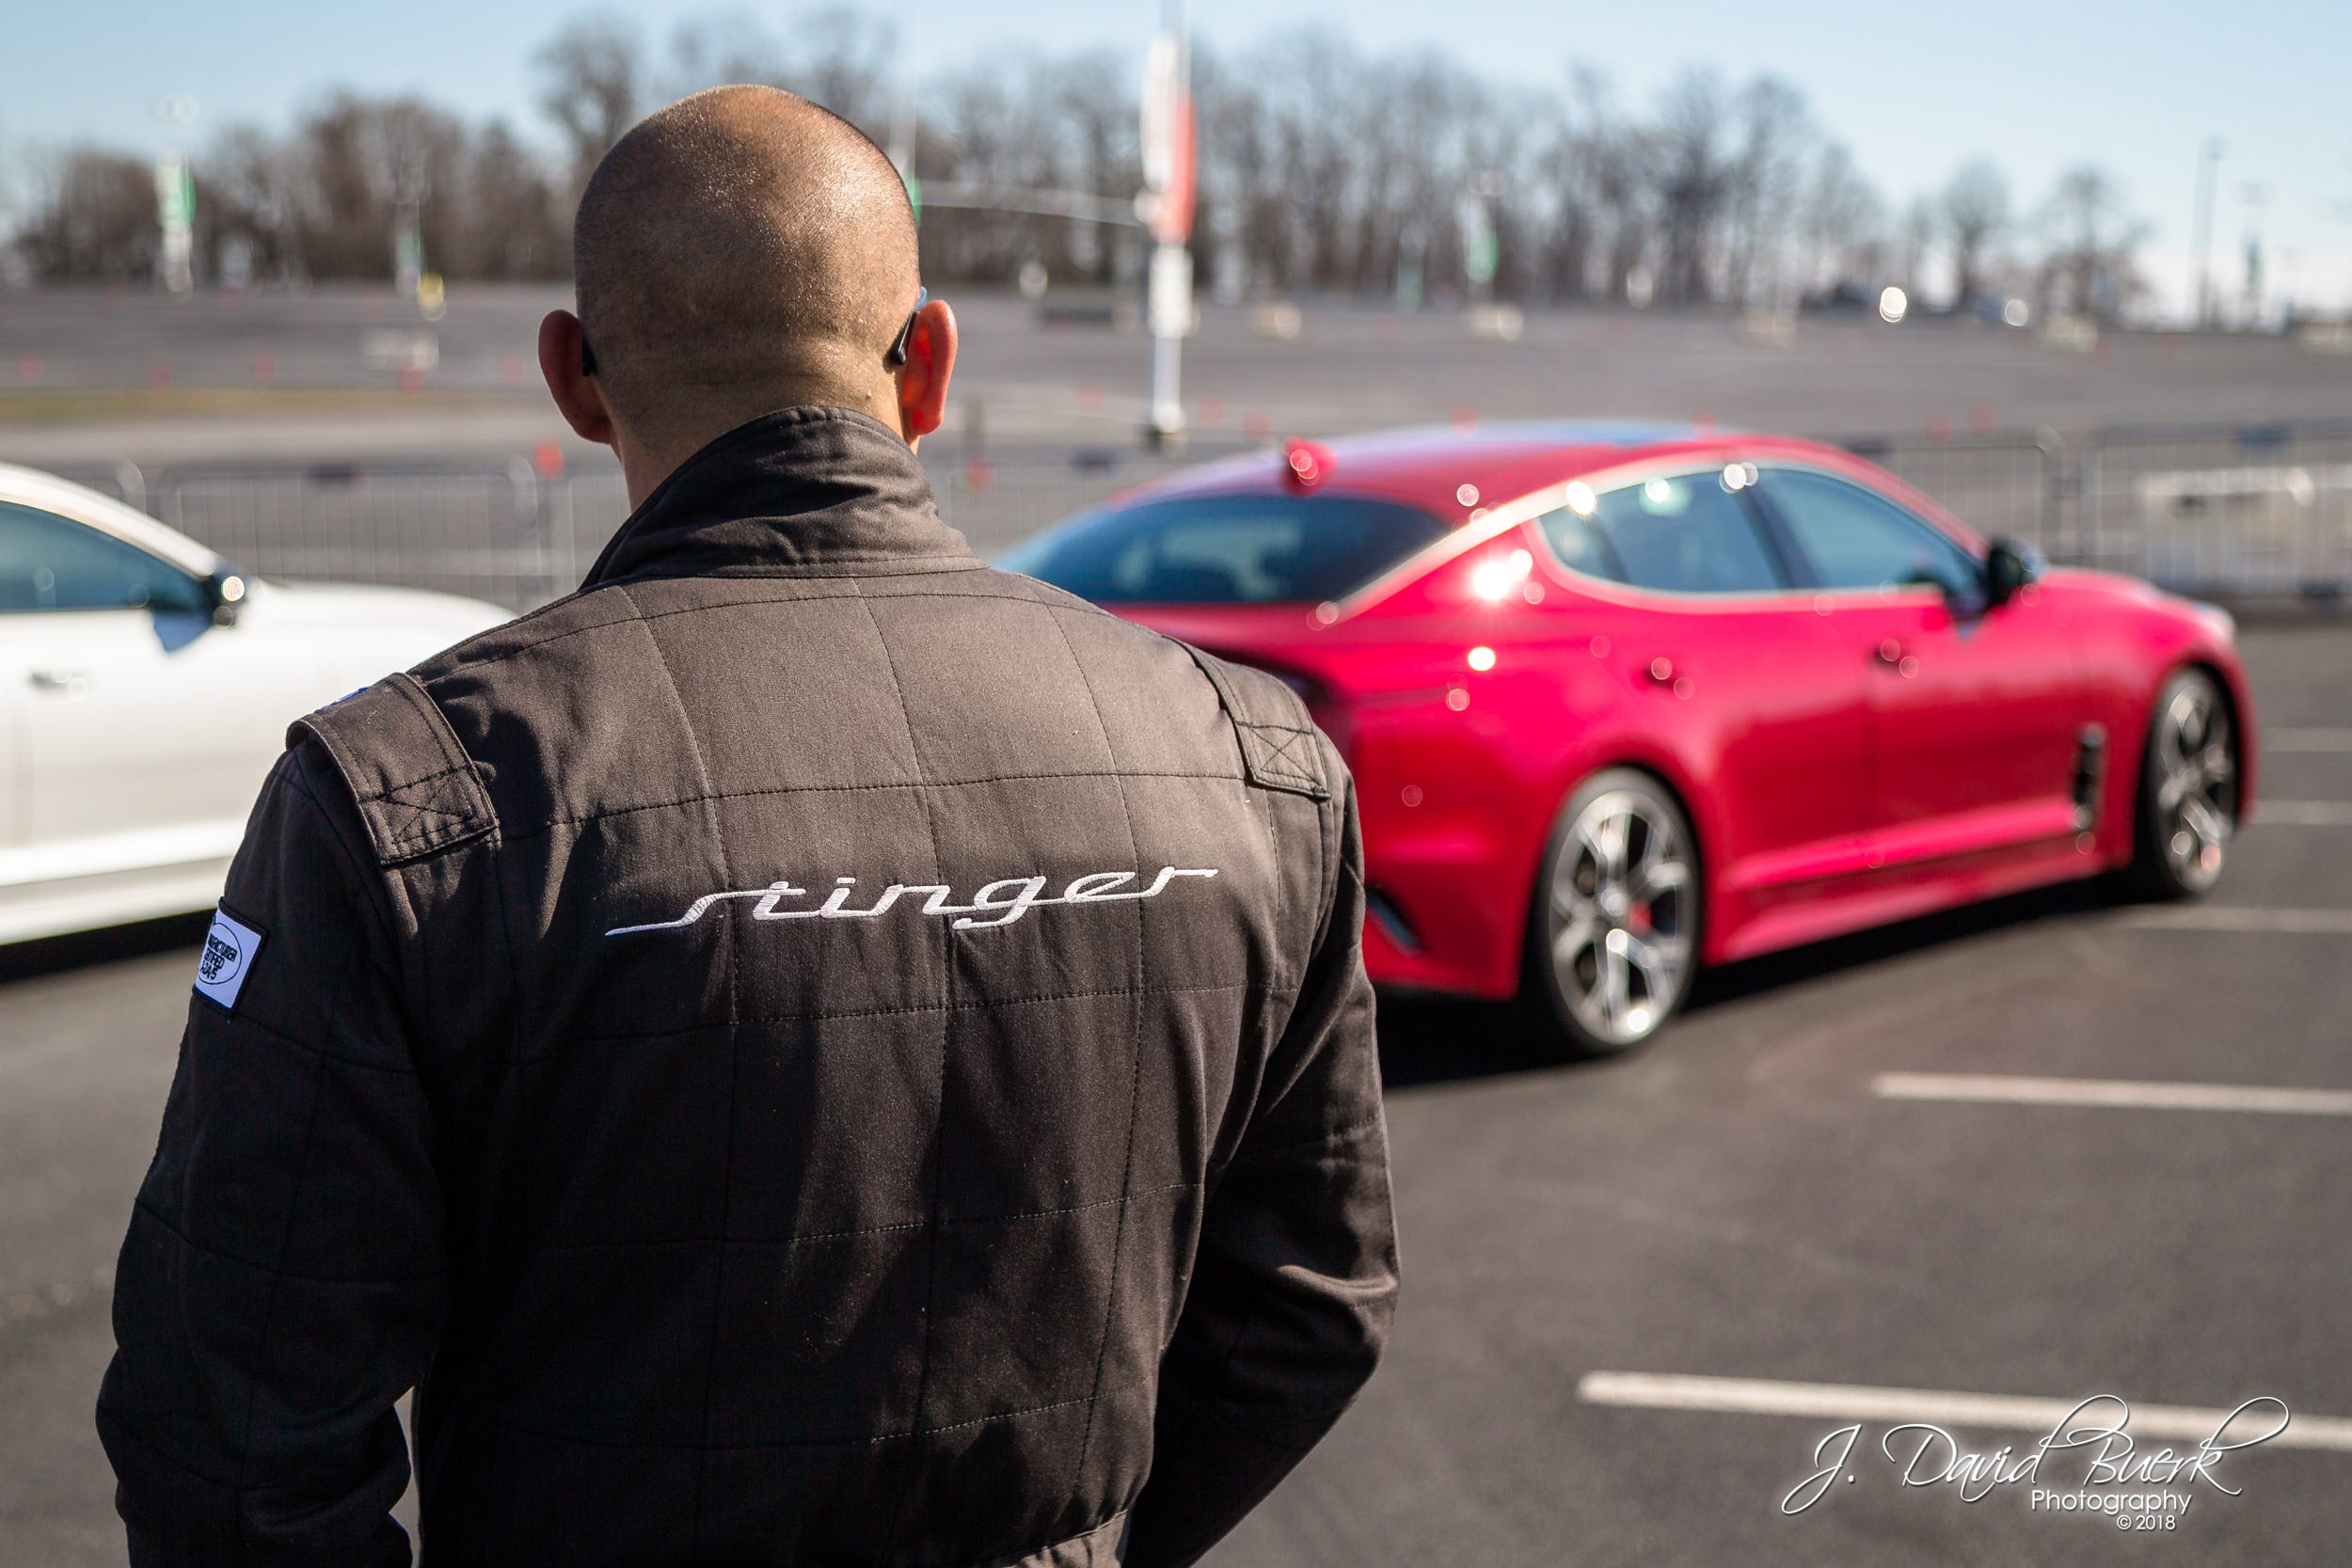 A driving instructor watches the autocross track during The Kia Stinger Experience Tour, Washington, DC, March 10th, 2018.